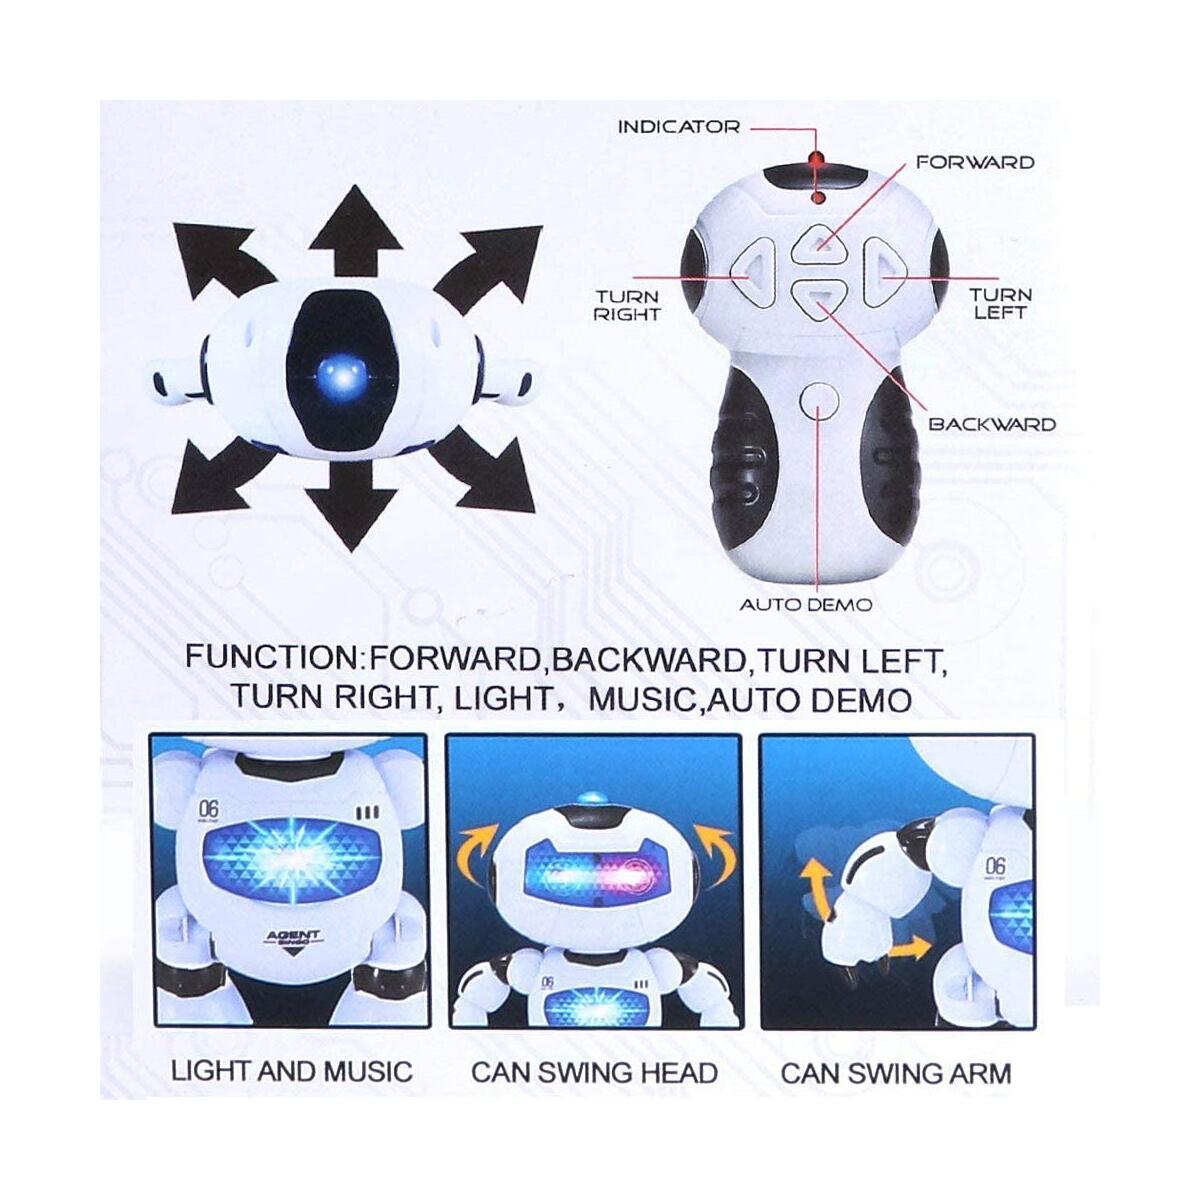 RC Robot for Kids - Electronic Learning Toys Toddler Dancing Singing Remote Control Robot Led Eyes with Music Lights